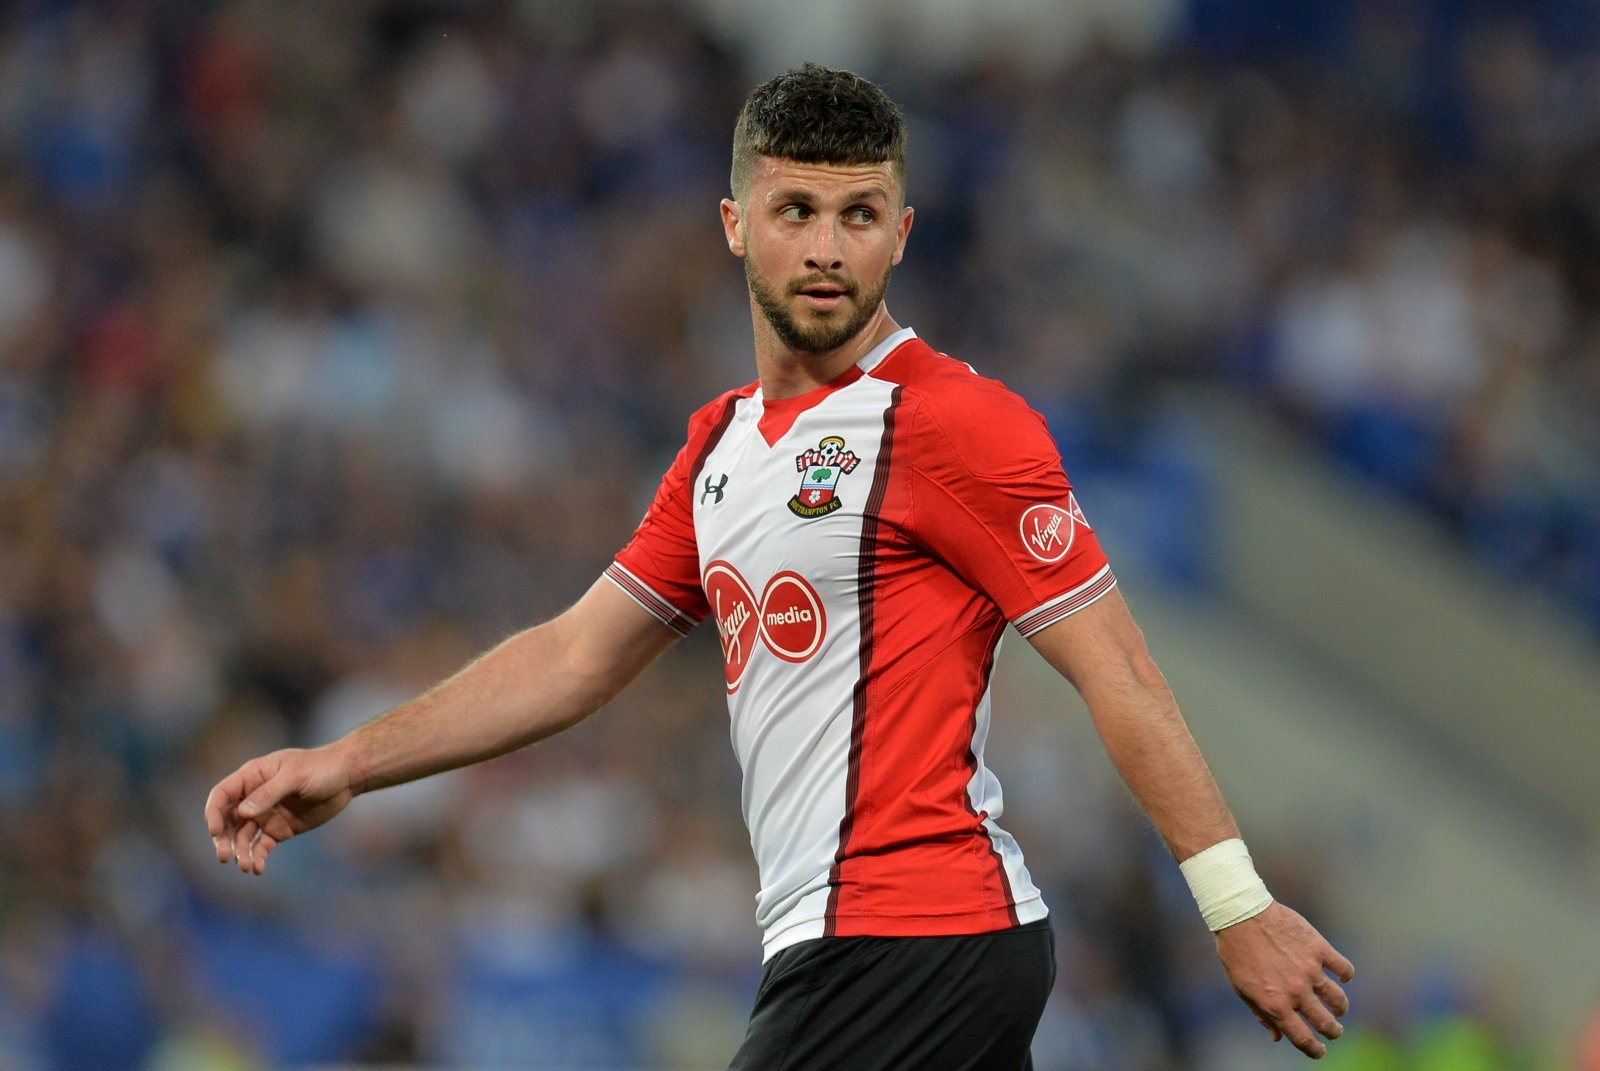 Shane Long gives Southampton an injury concern